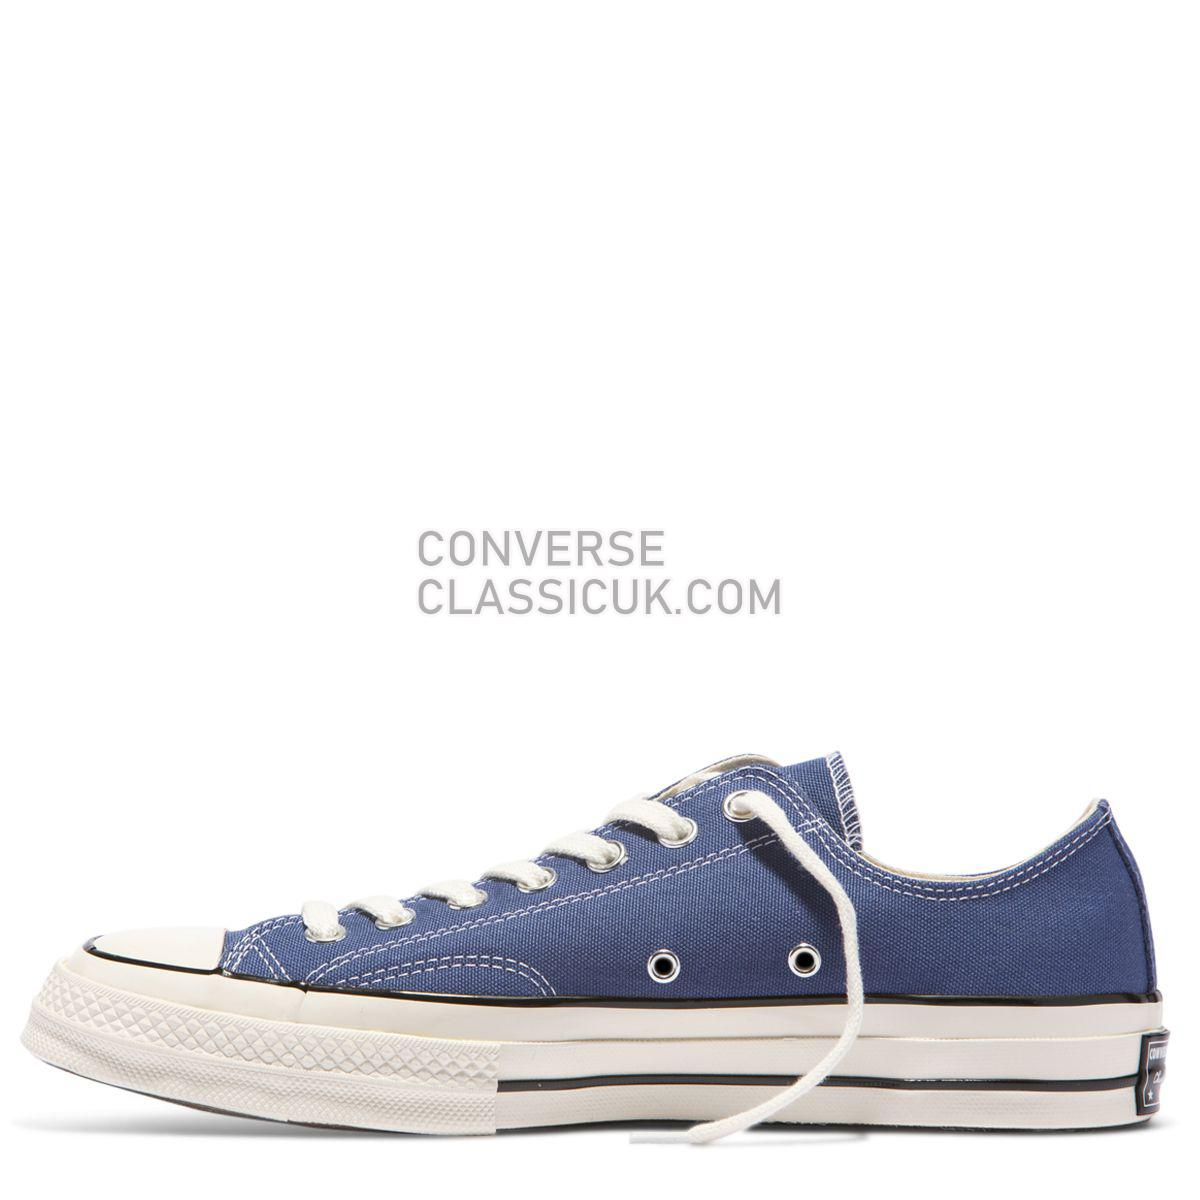 Converse Chuck Taylor All Star 70 Vintage Canvas Low Top True Navy Mens Womens Unisex 162064 Obsidian/Black/Egret Shoes